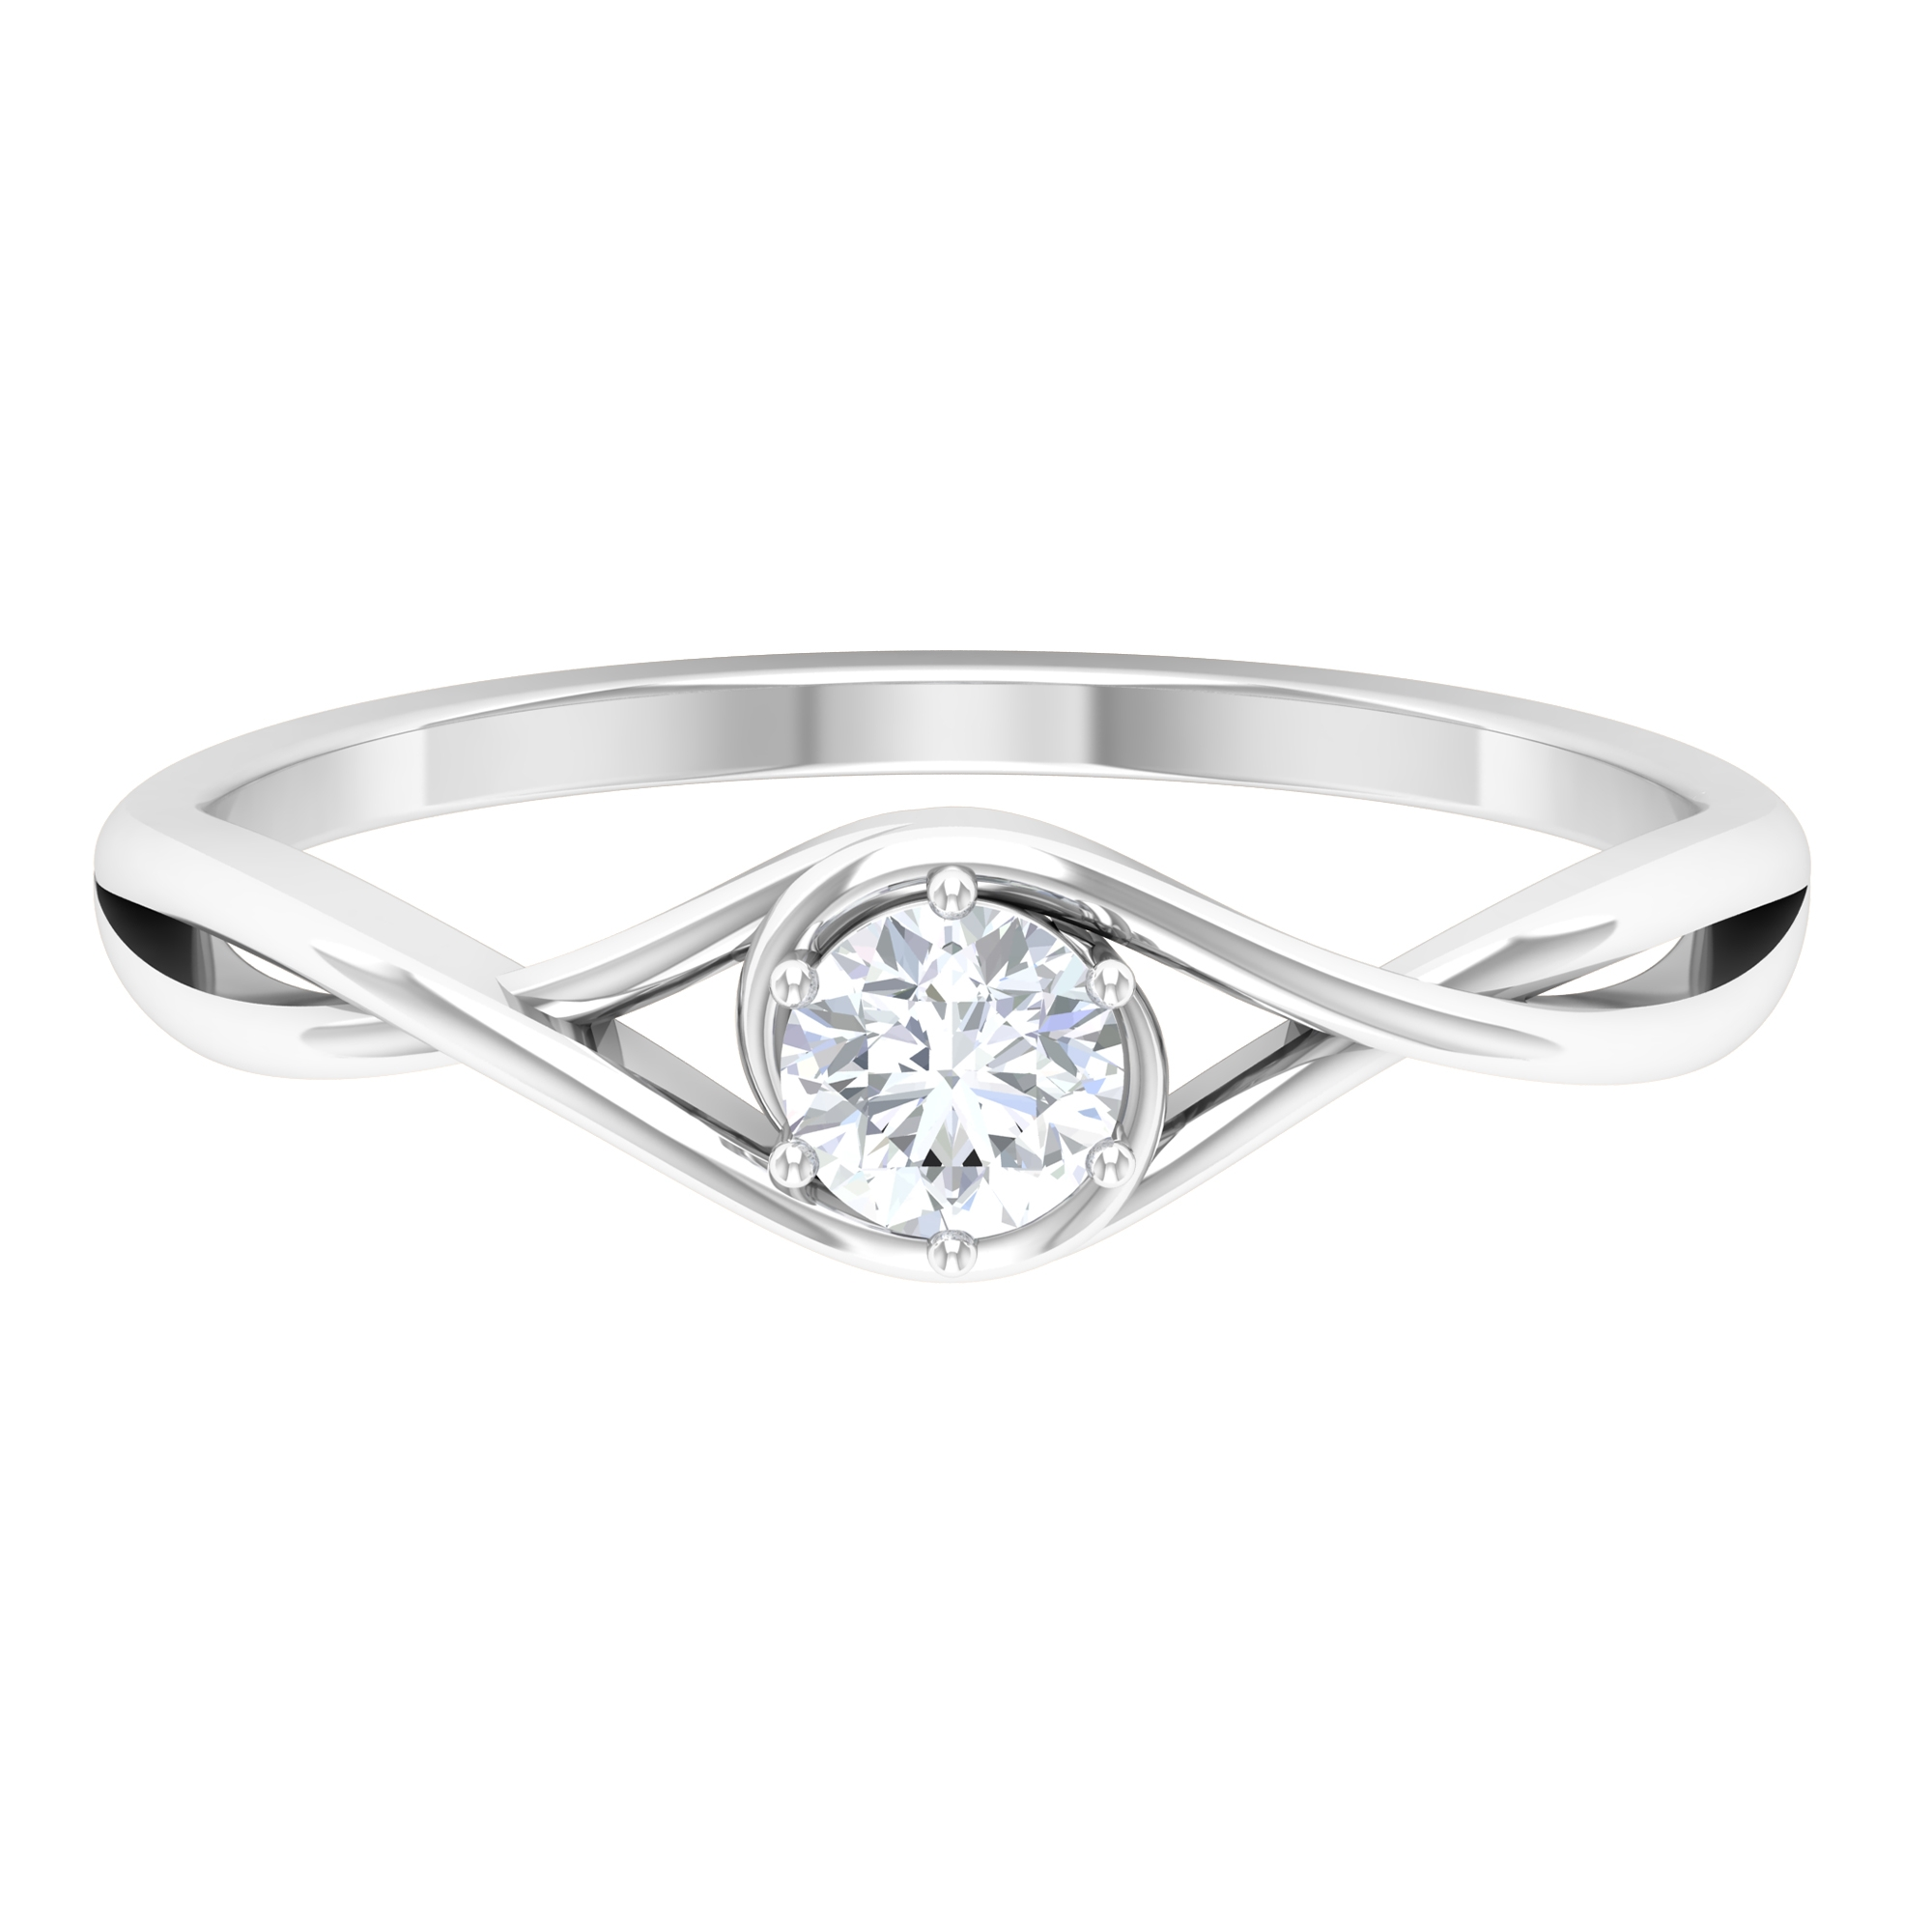 4 MM Round Cut Diamond Solitaire Ring in 6 Prong Setting with Crossover Shank